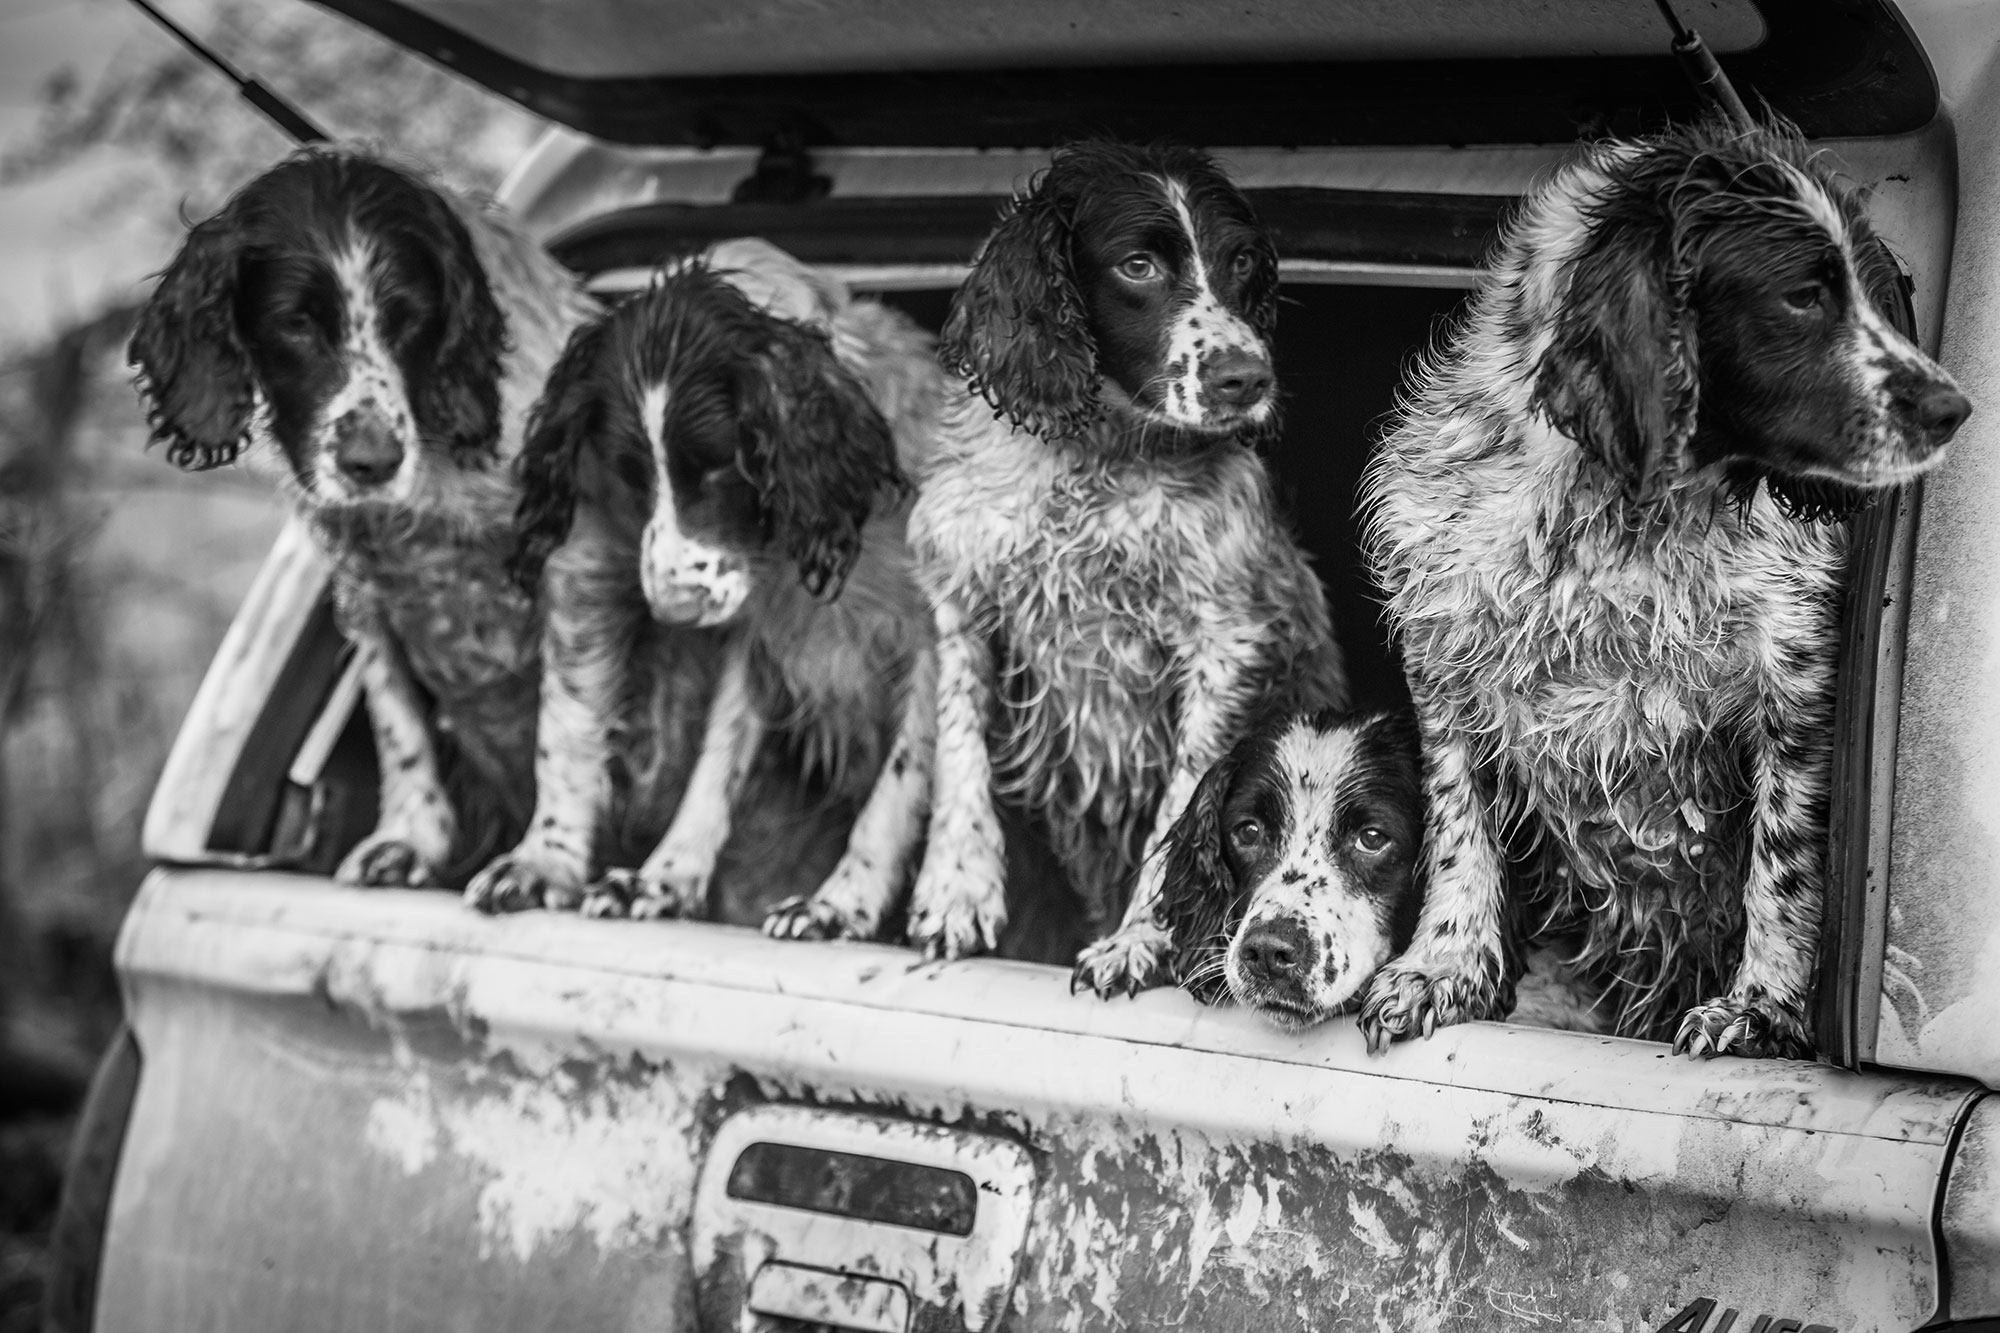 The Kennel Club Photo Contest 2nd place dogs at work